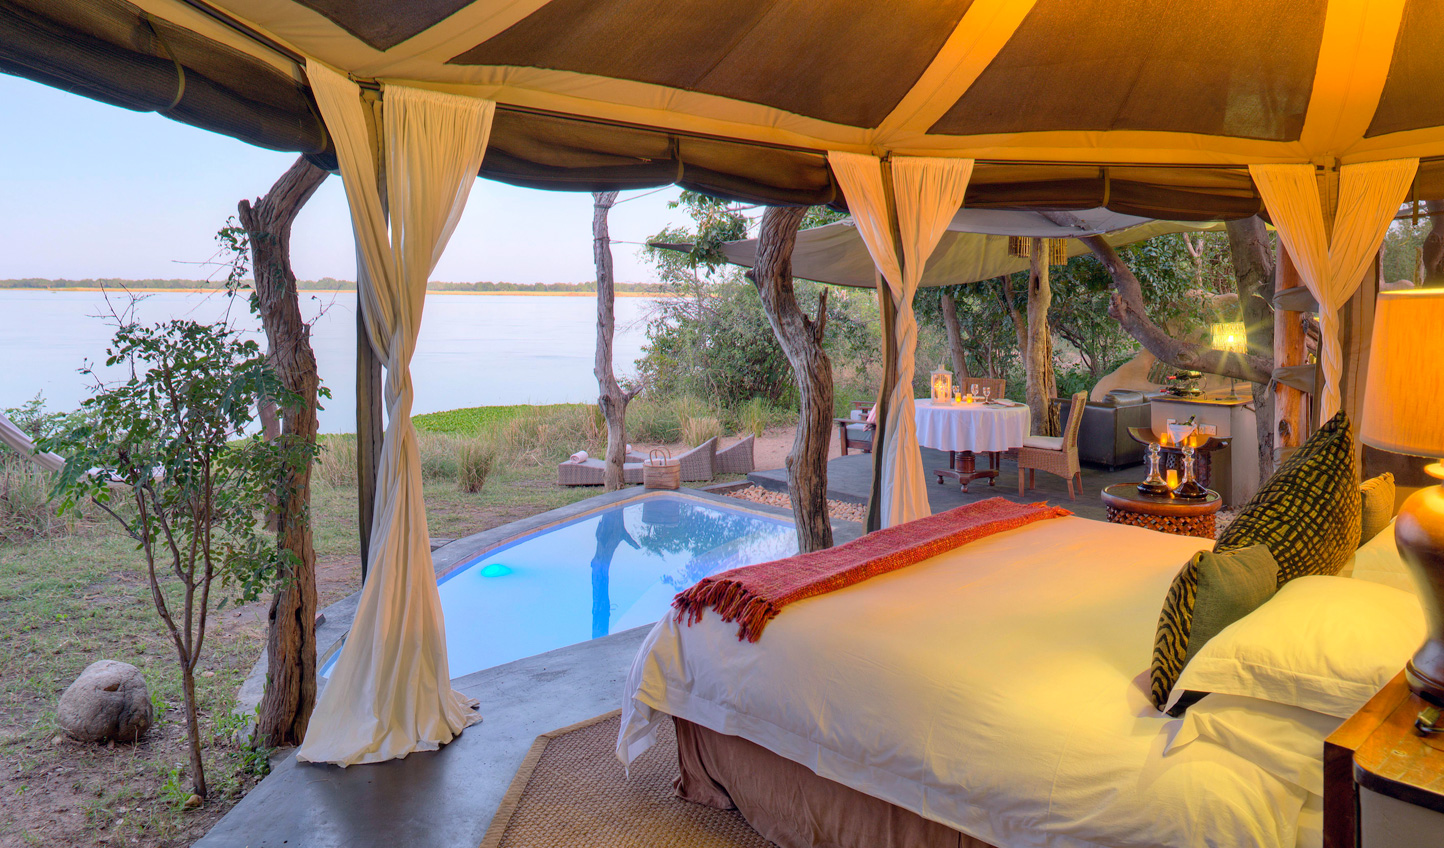 Finish your trip in Chongwe Camp where you'll have your own private plunge pool